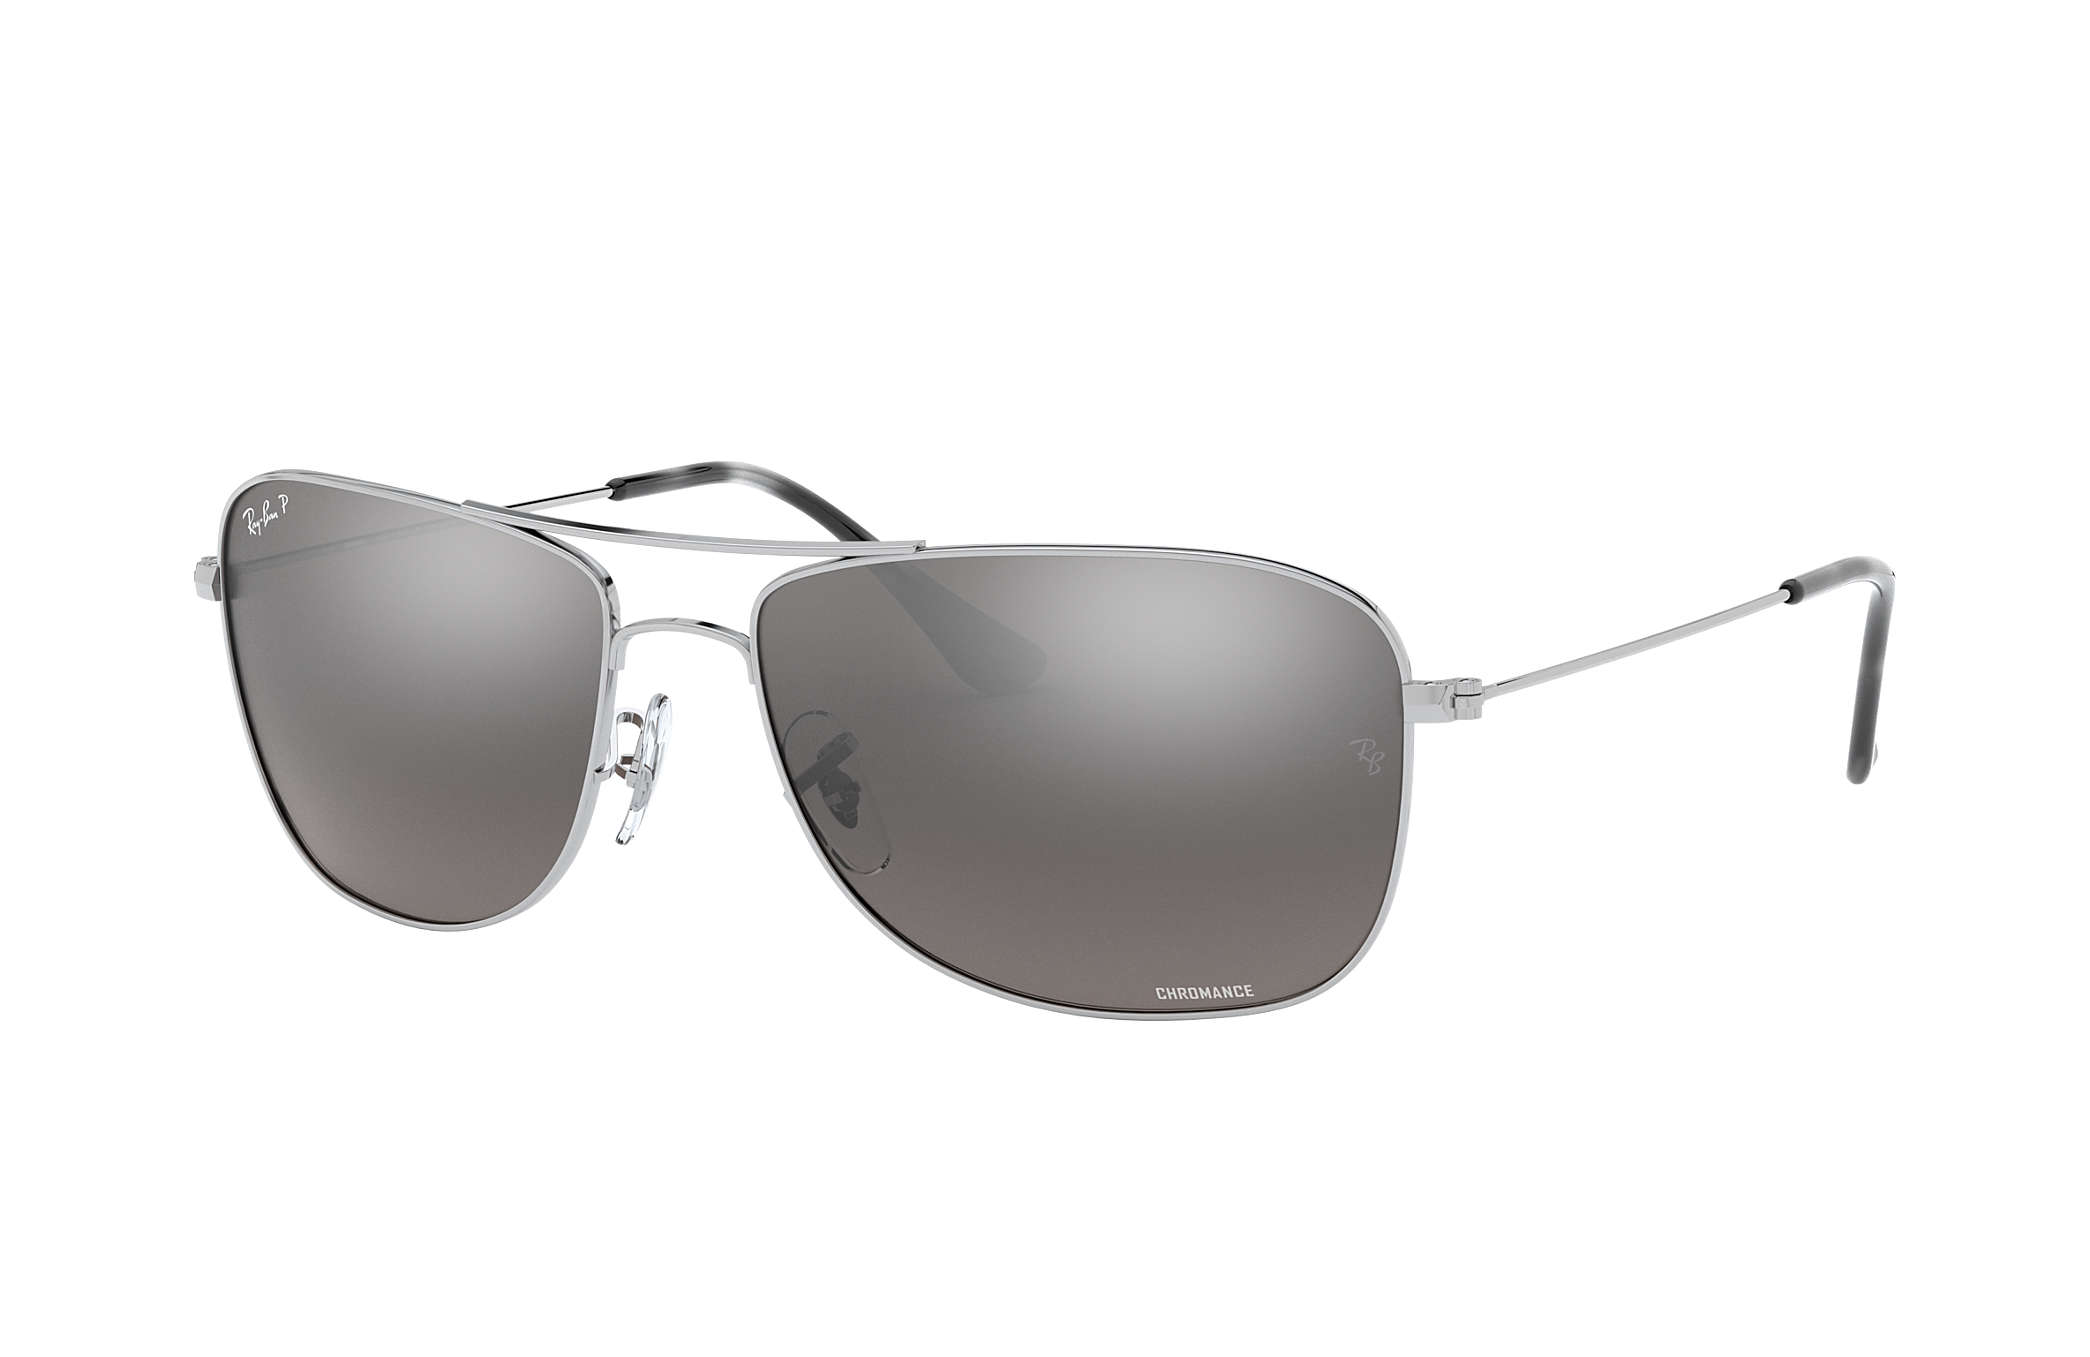 c91d3d4f8336d Ray-Ban Rb3543 Chromance RB3543 Silver - Metal - Silver Polarized ...